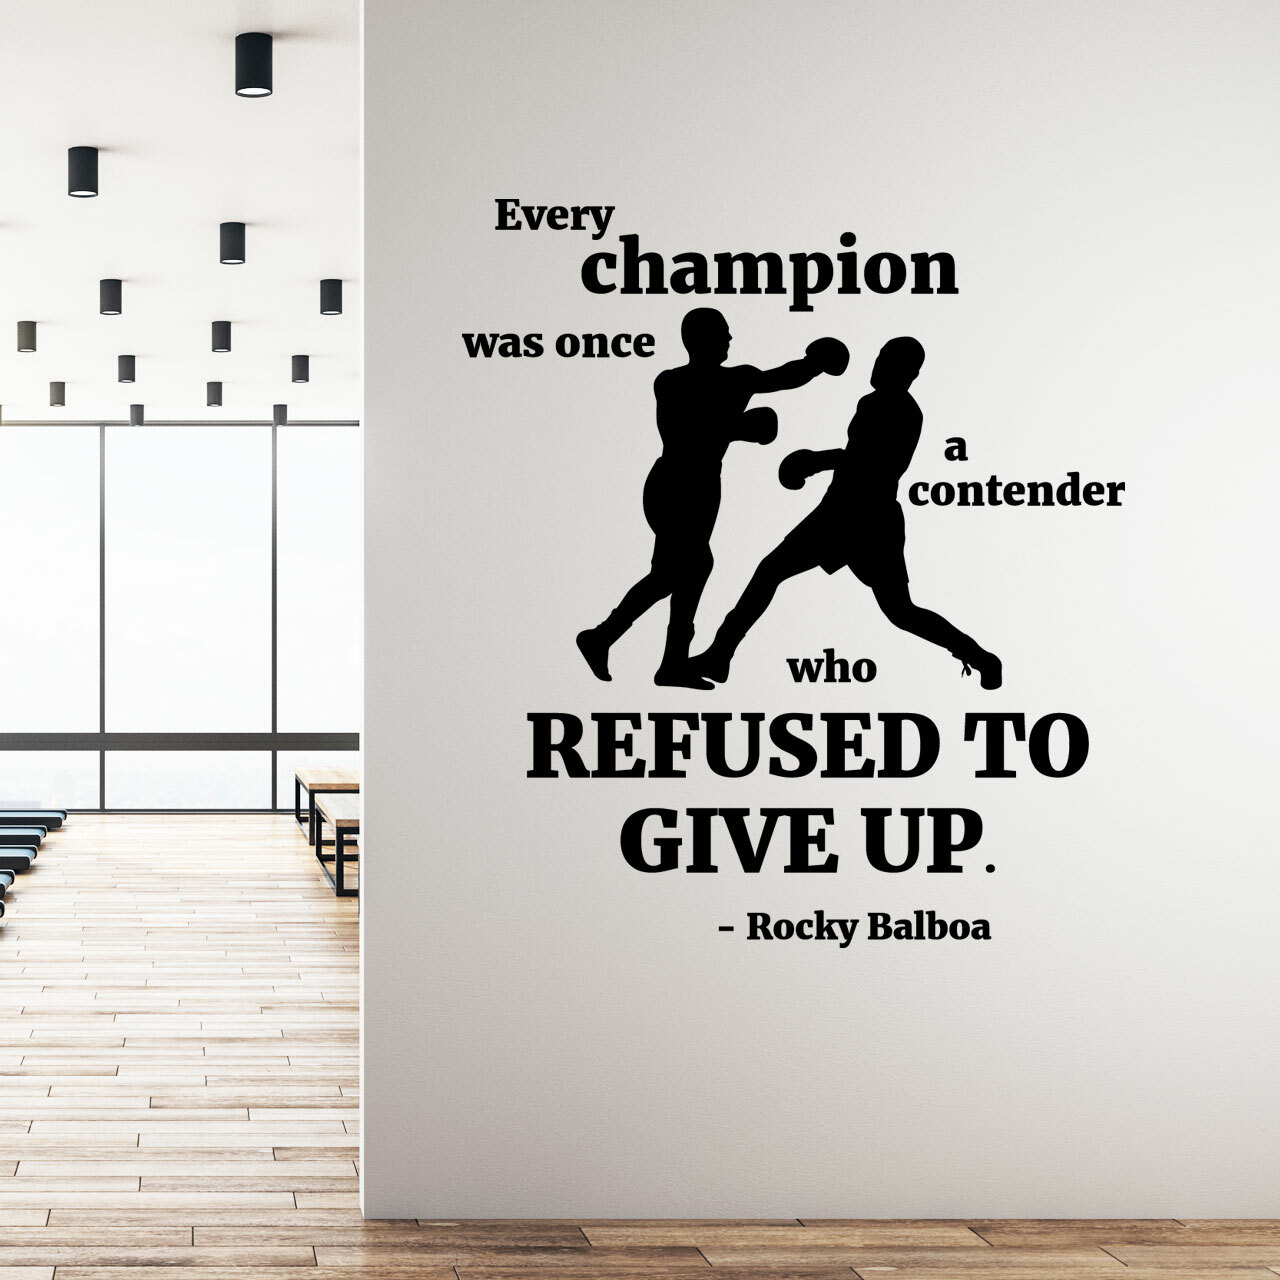 Every champion was once a contender who refused to give up -Rocky Balboa layout on a white gym wall